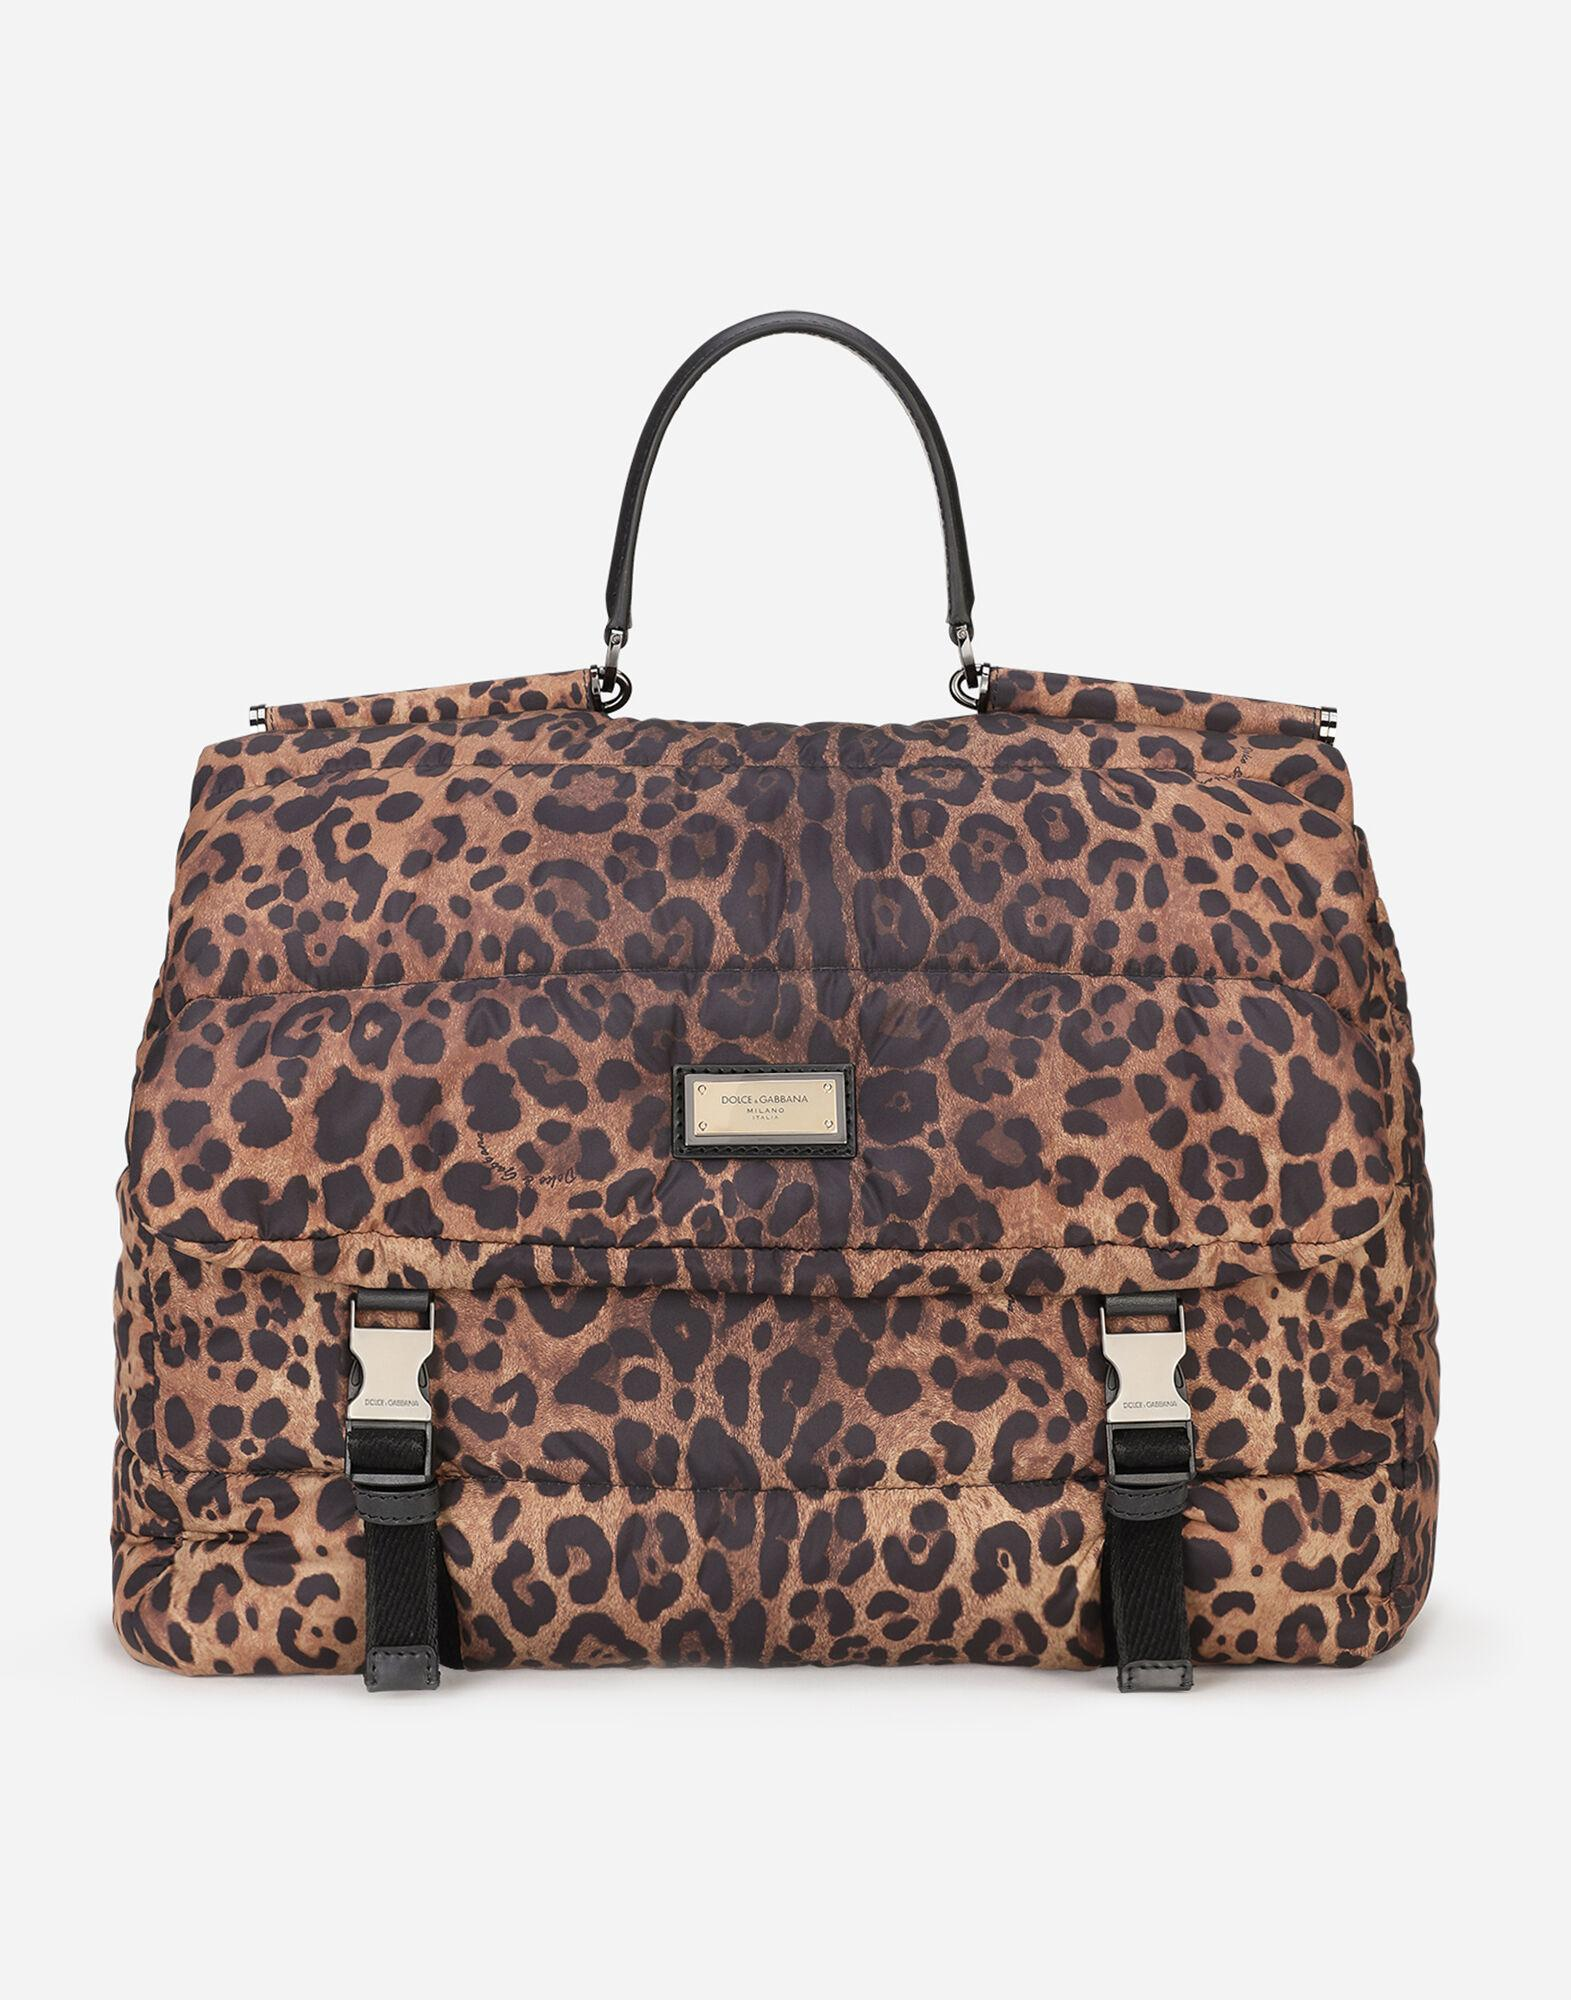 Leopard-print Sicily travel bag in quilted nylon